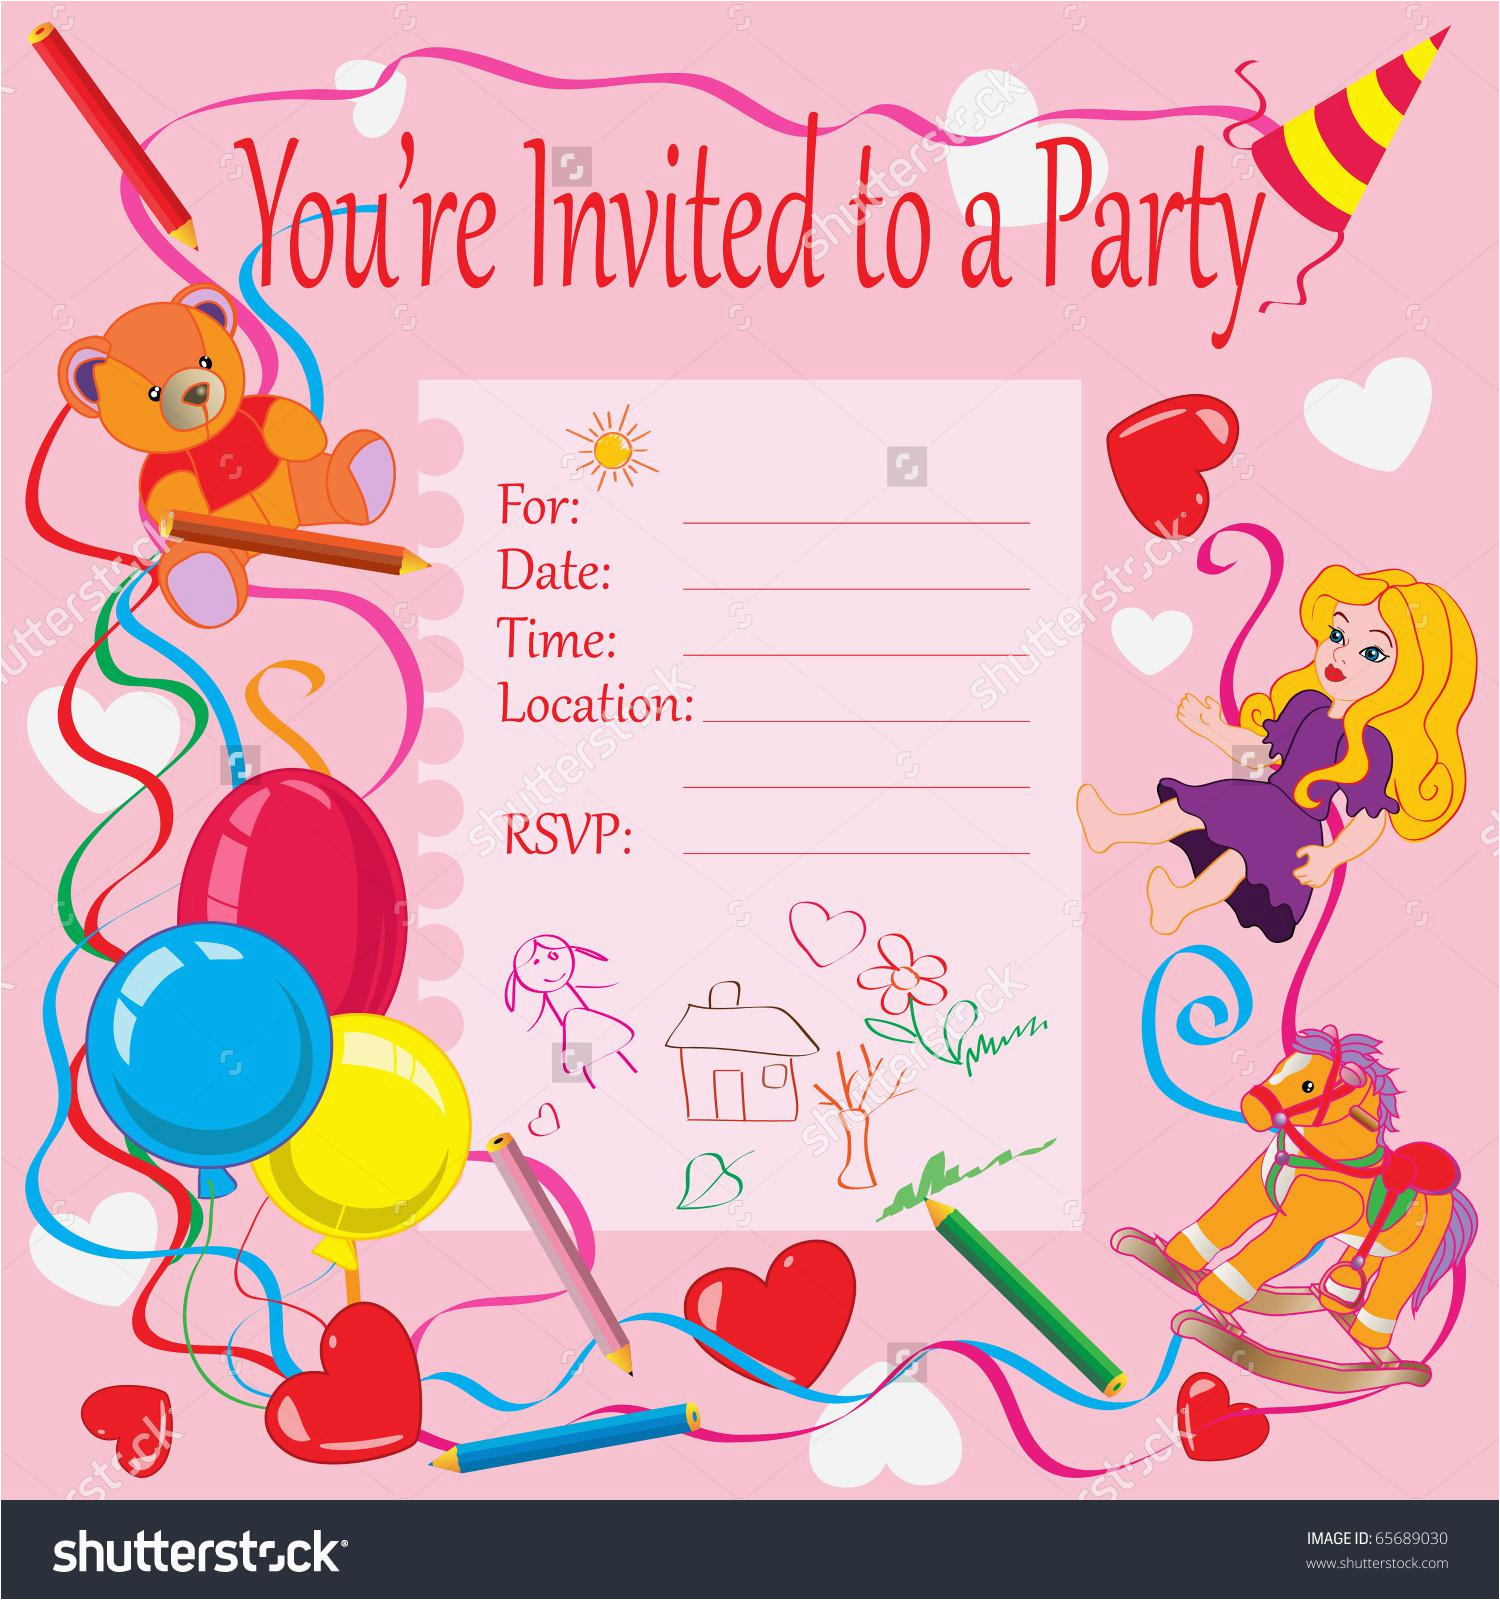 Make A Birthday Invitation Online Free Your Own Party Invitations Printable